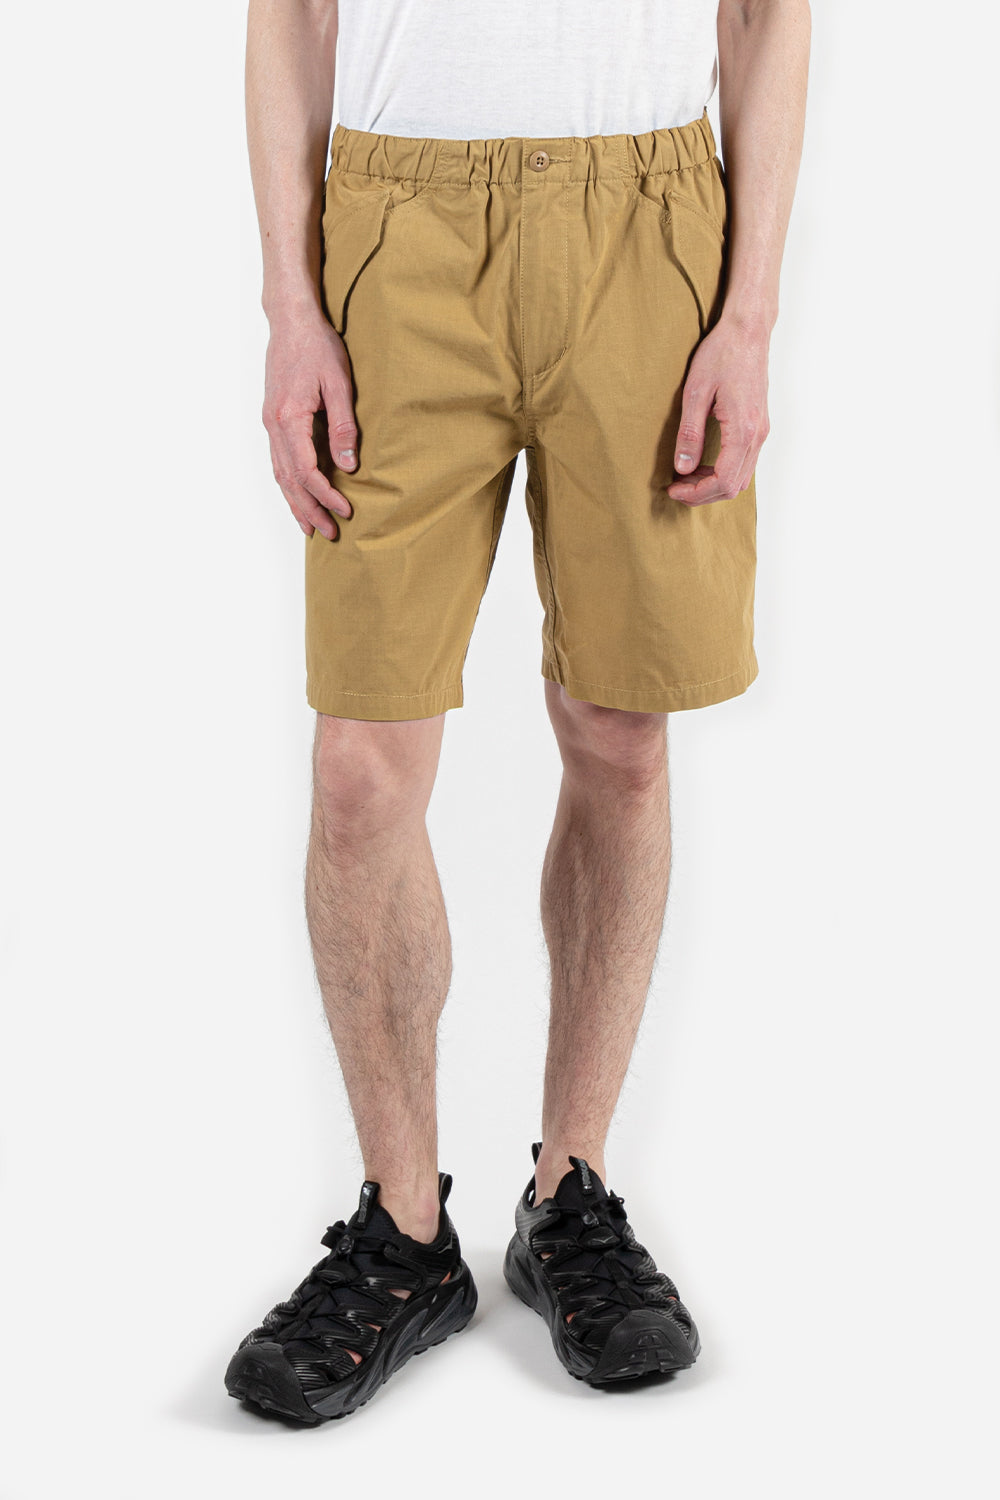 goldwin-relax-easy-shorts-beige